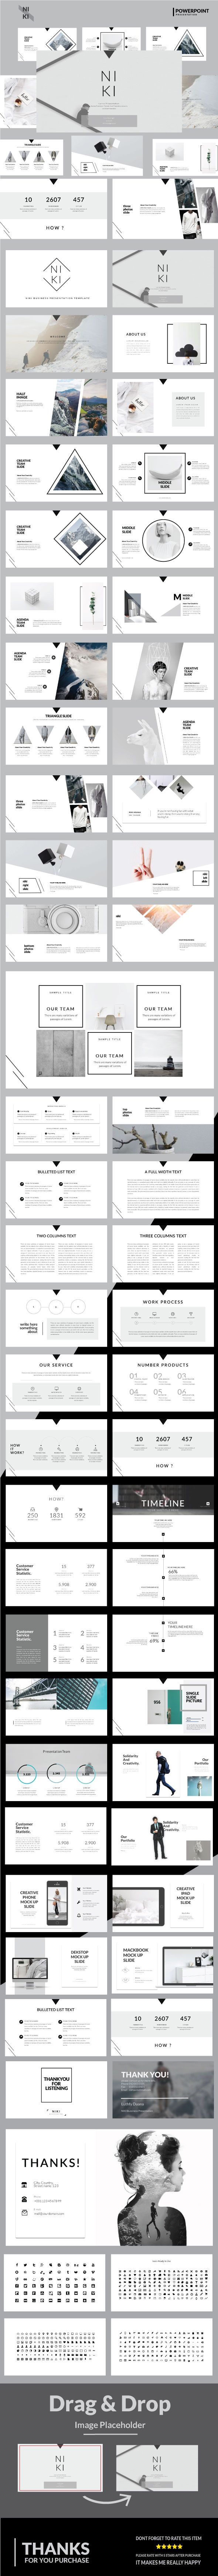 Niki Multipurpose Powerpoint Template - Business PowerPoint Templates